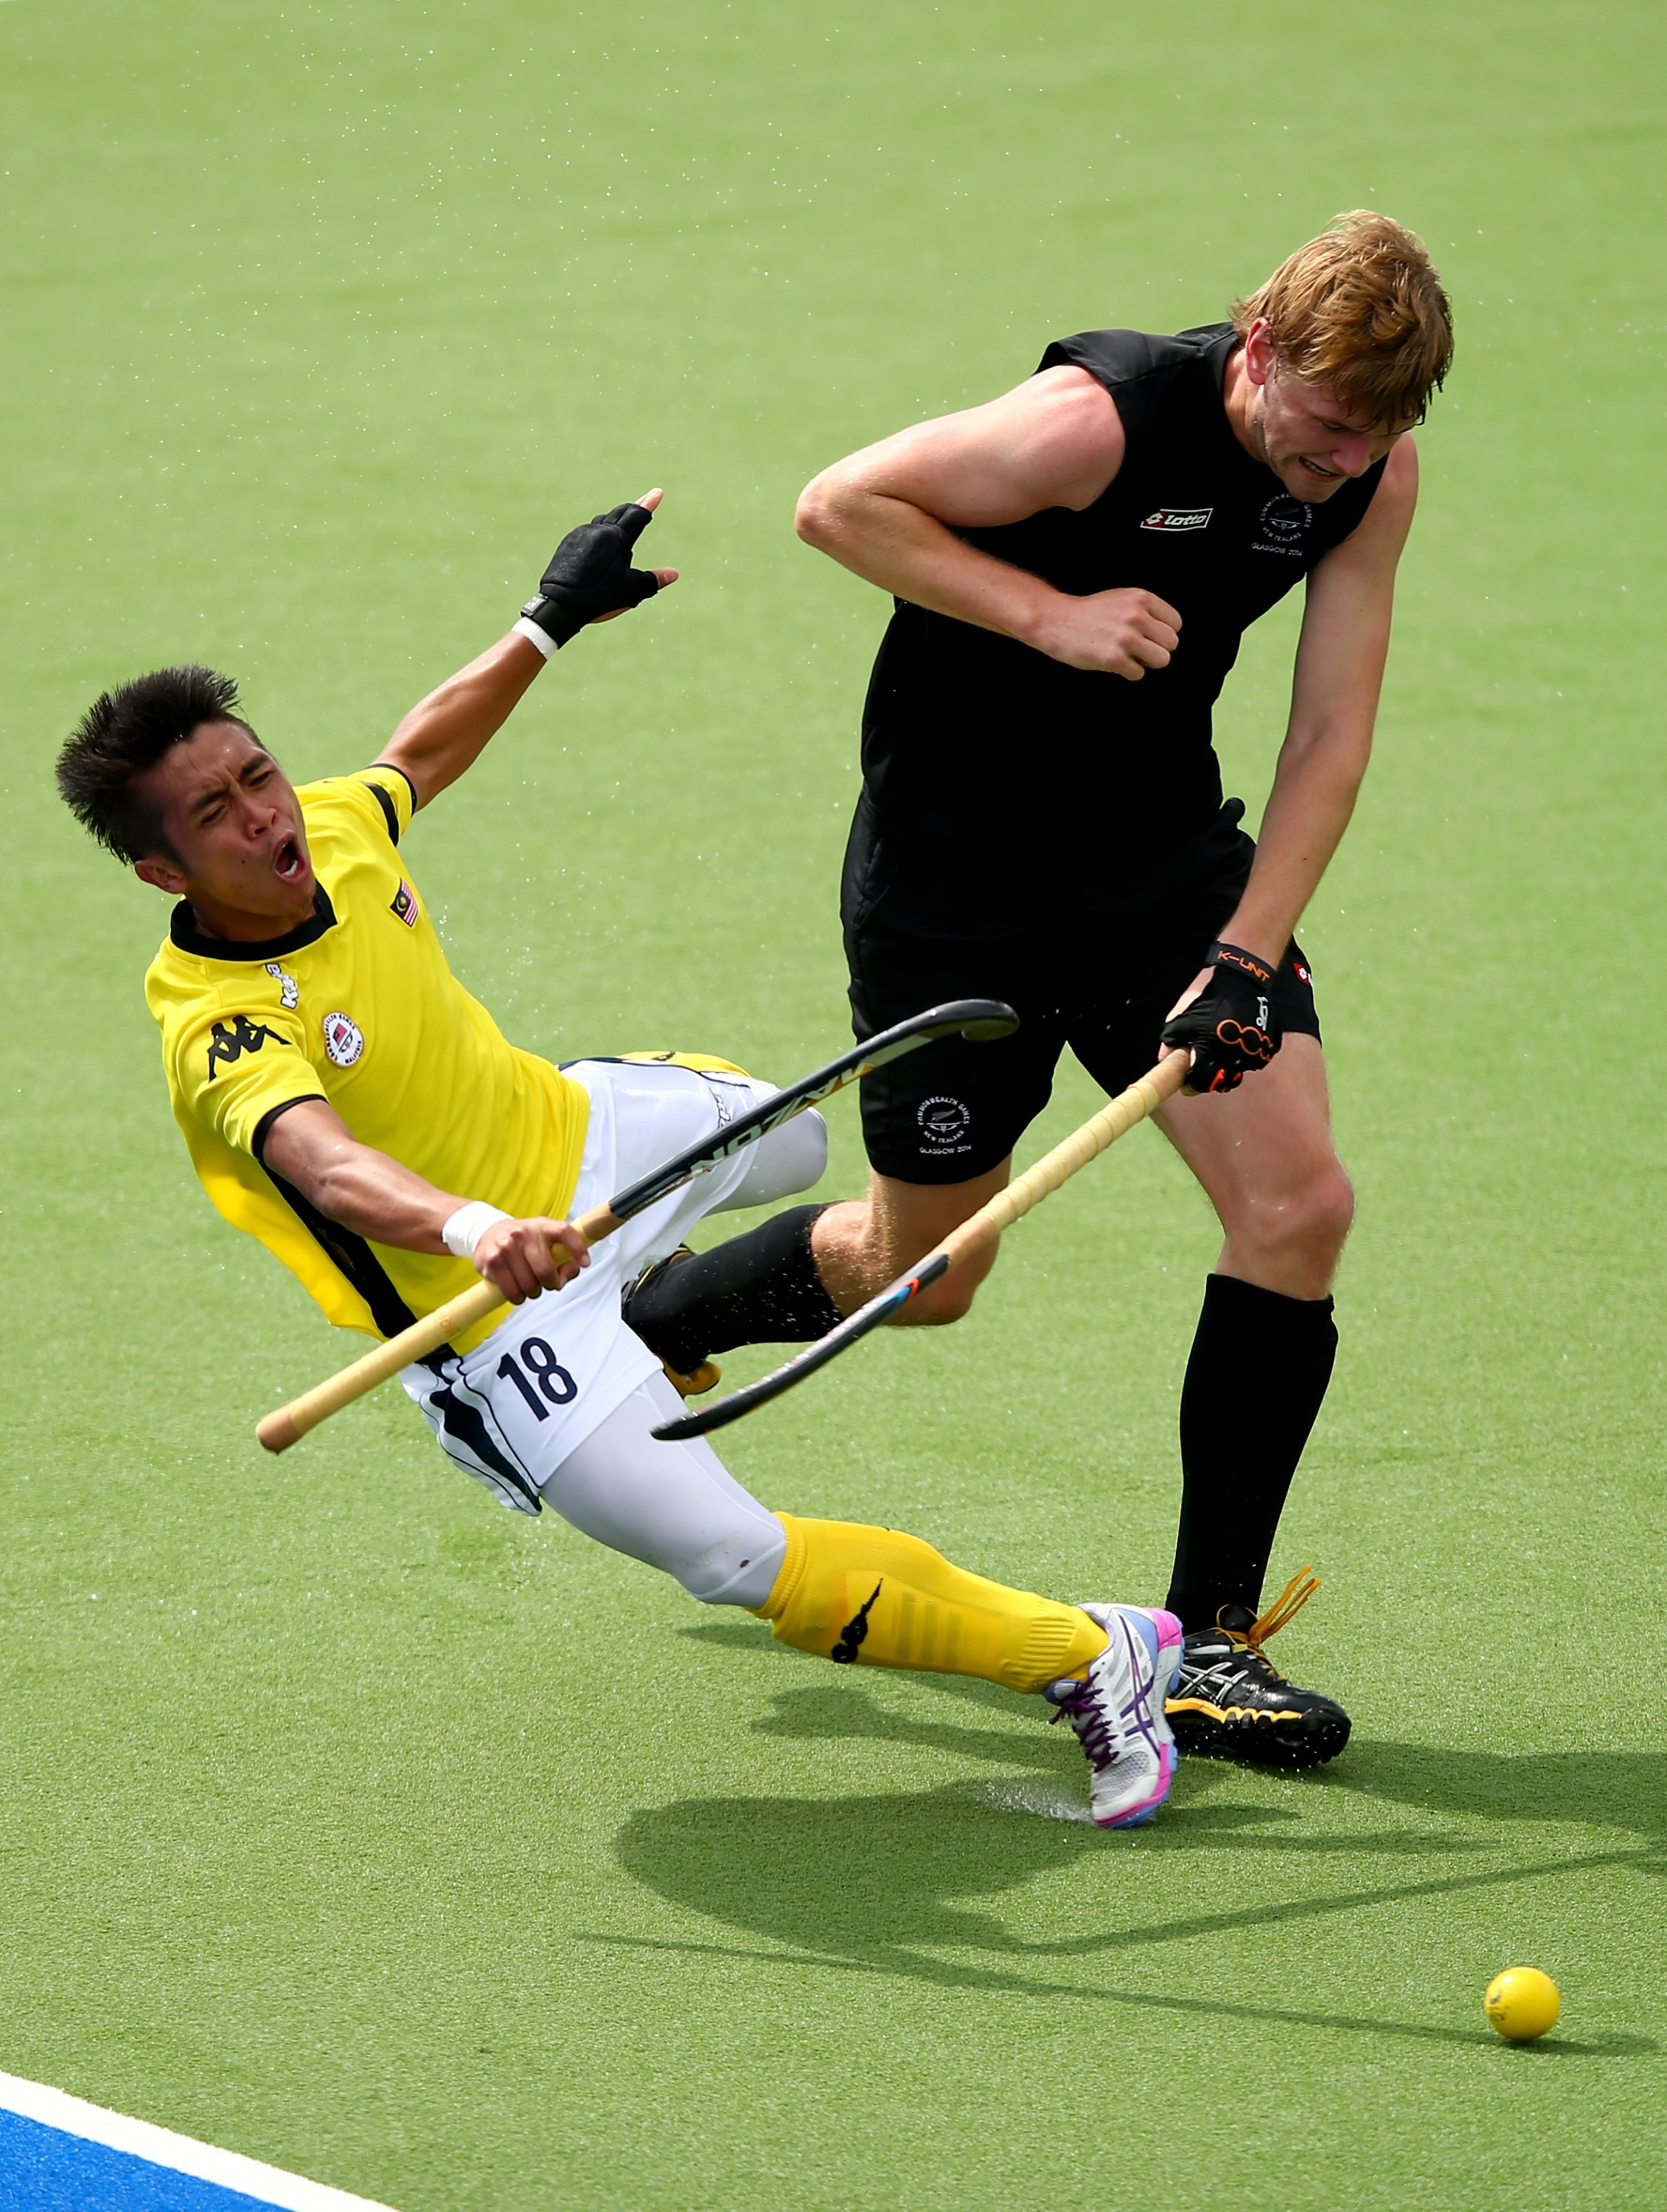 20th Commonwealth Games - Day 8: Hockey